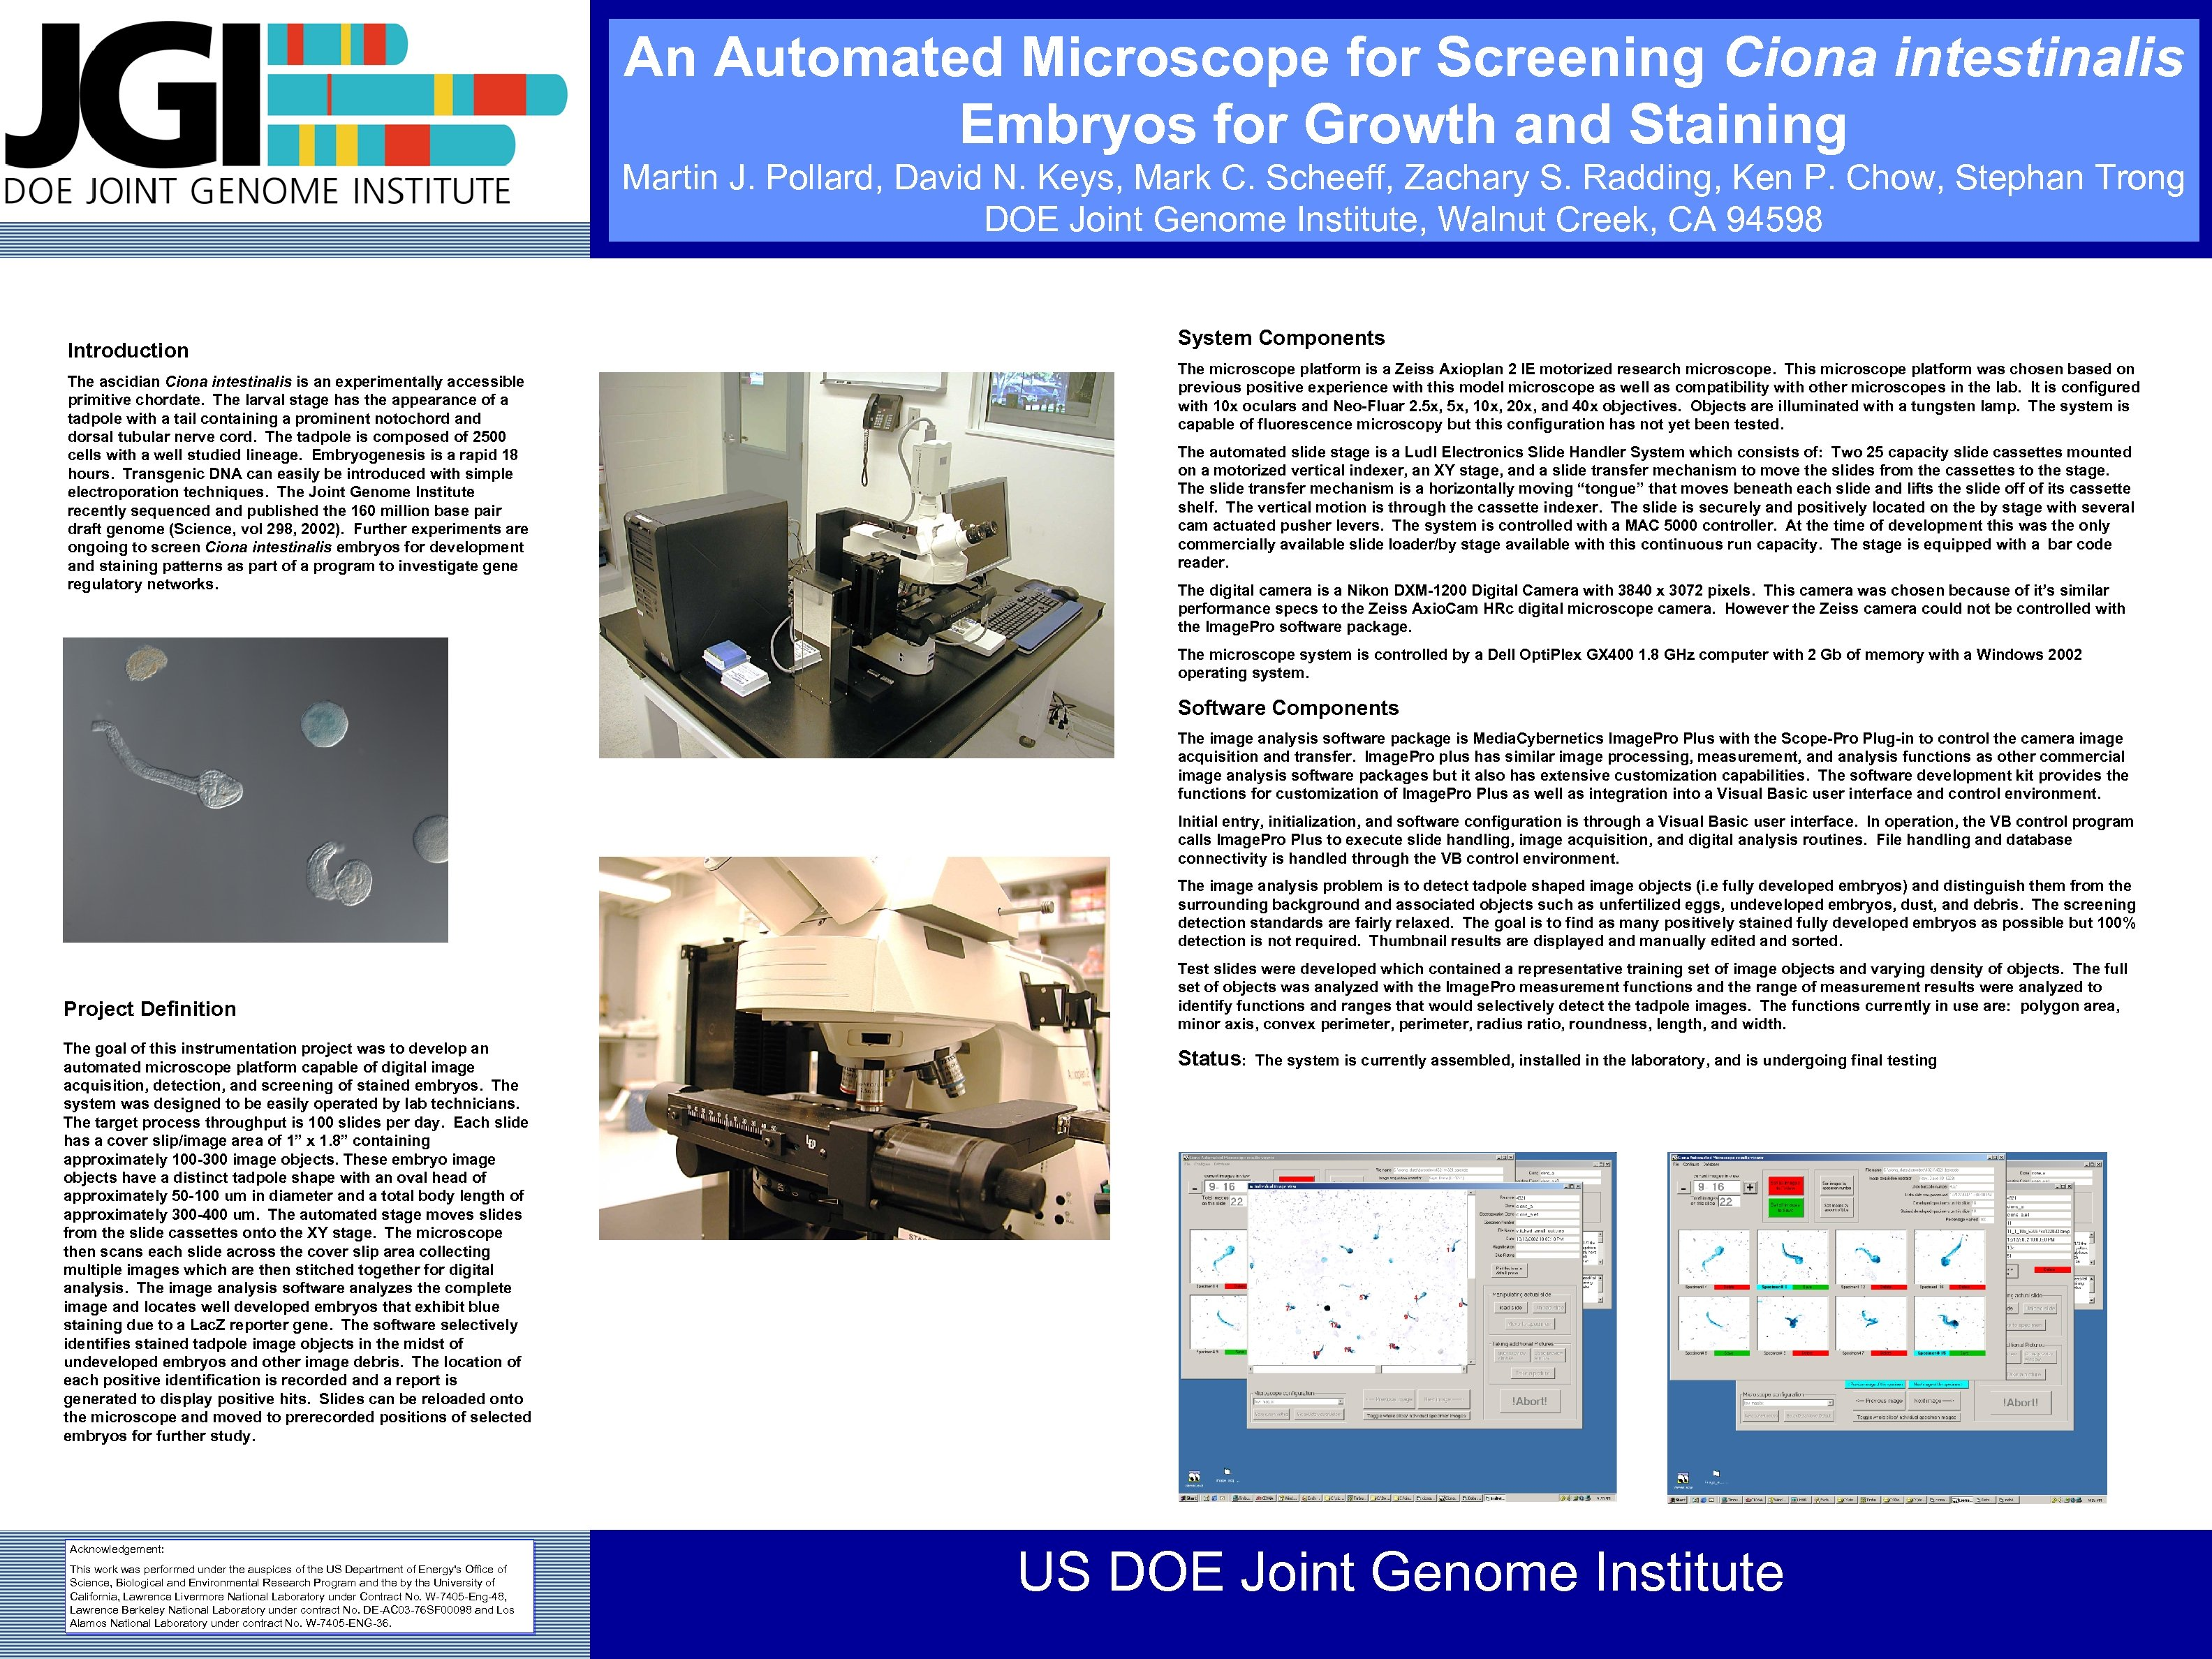 An Automated Microscope for Screening Ciona intestinalis Embryos for Growth and Staining Martin J.